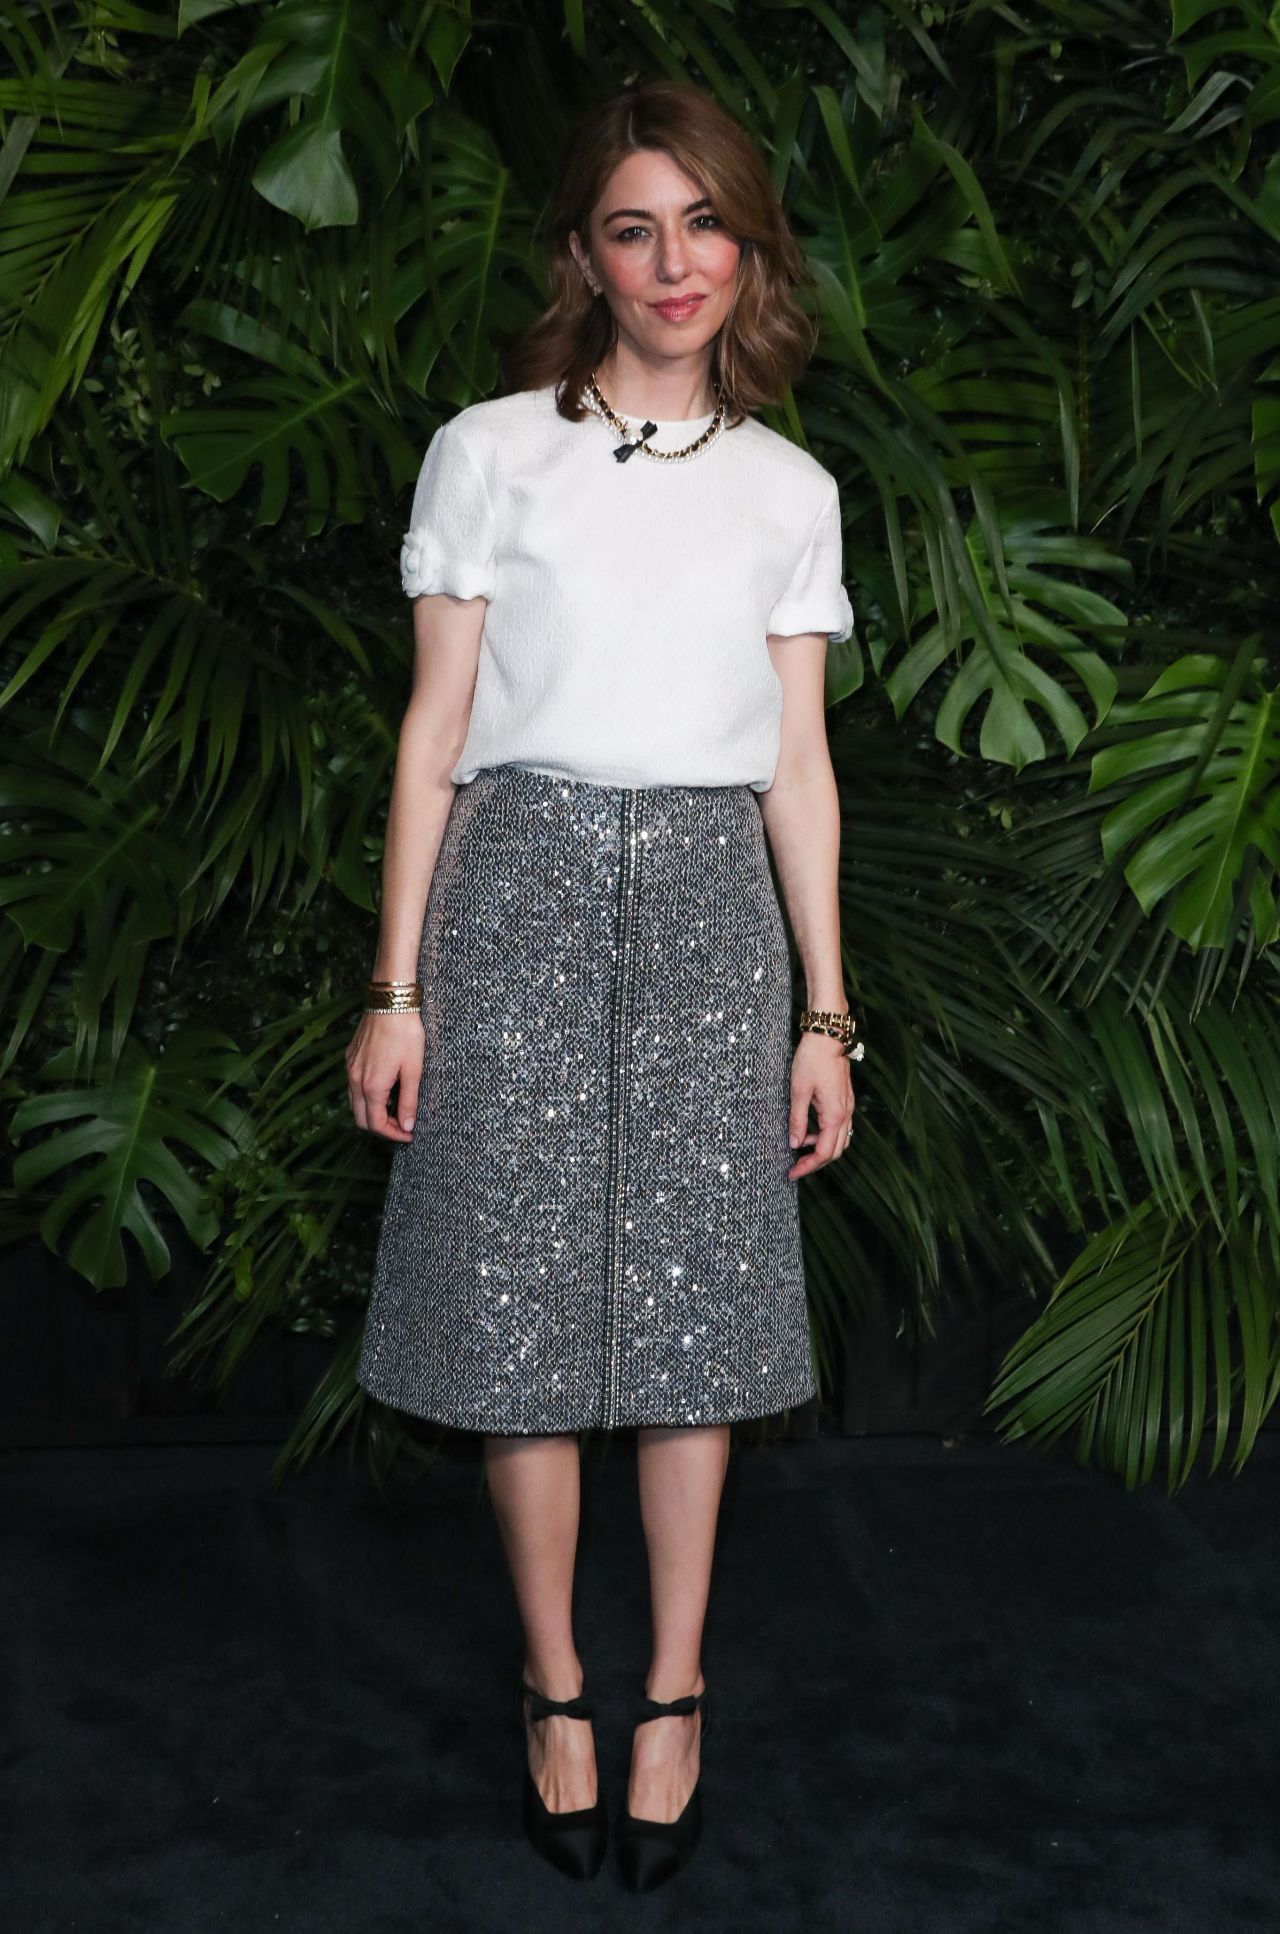 sofia-coppola-in-chanel-charles-finch-and-chanel-pre-oscar-awards-2020-dinner